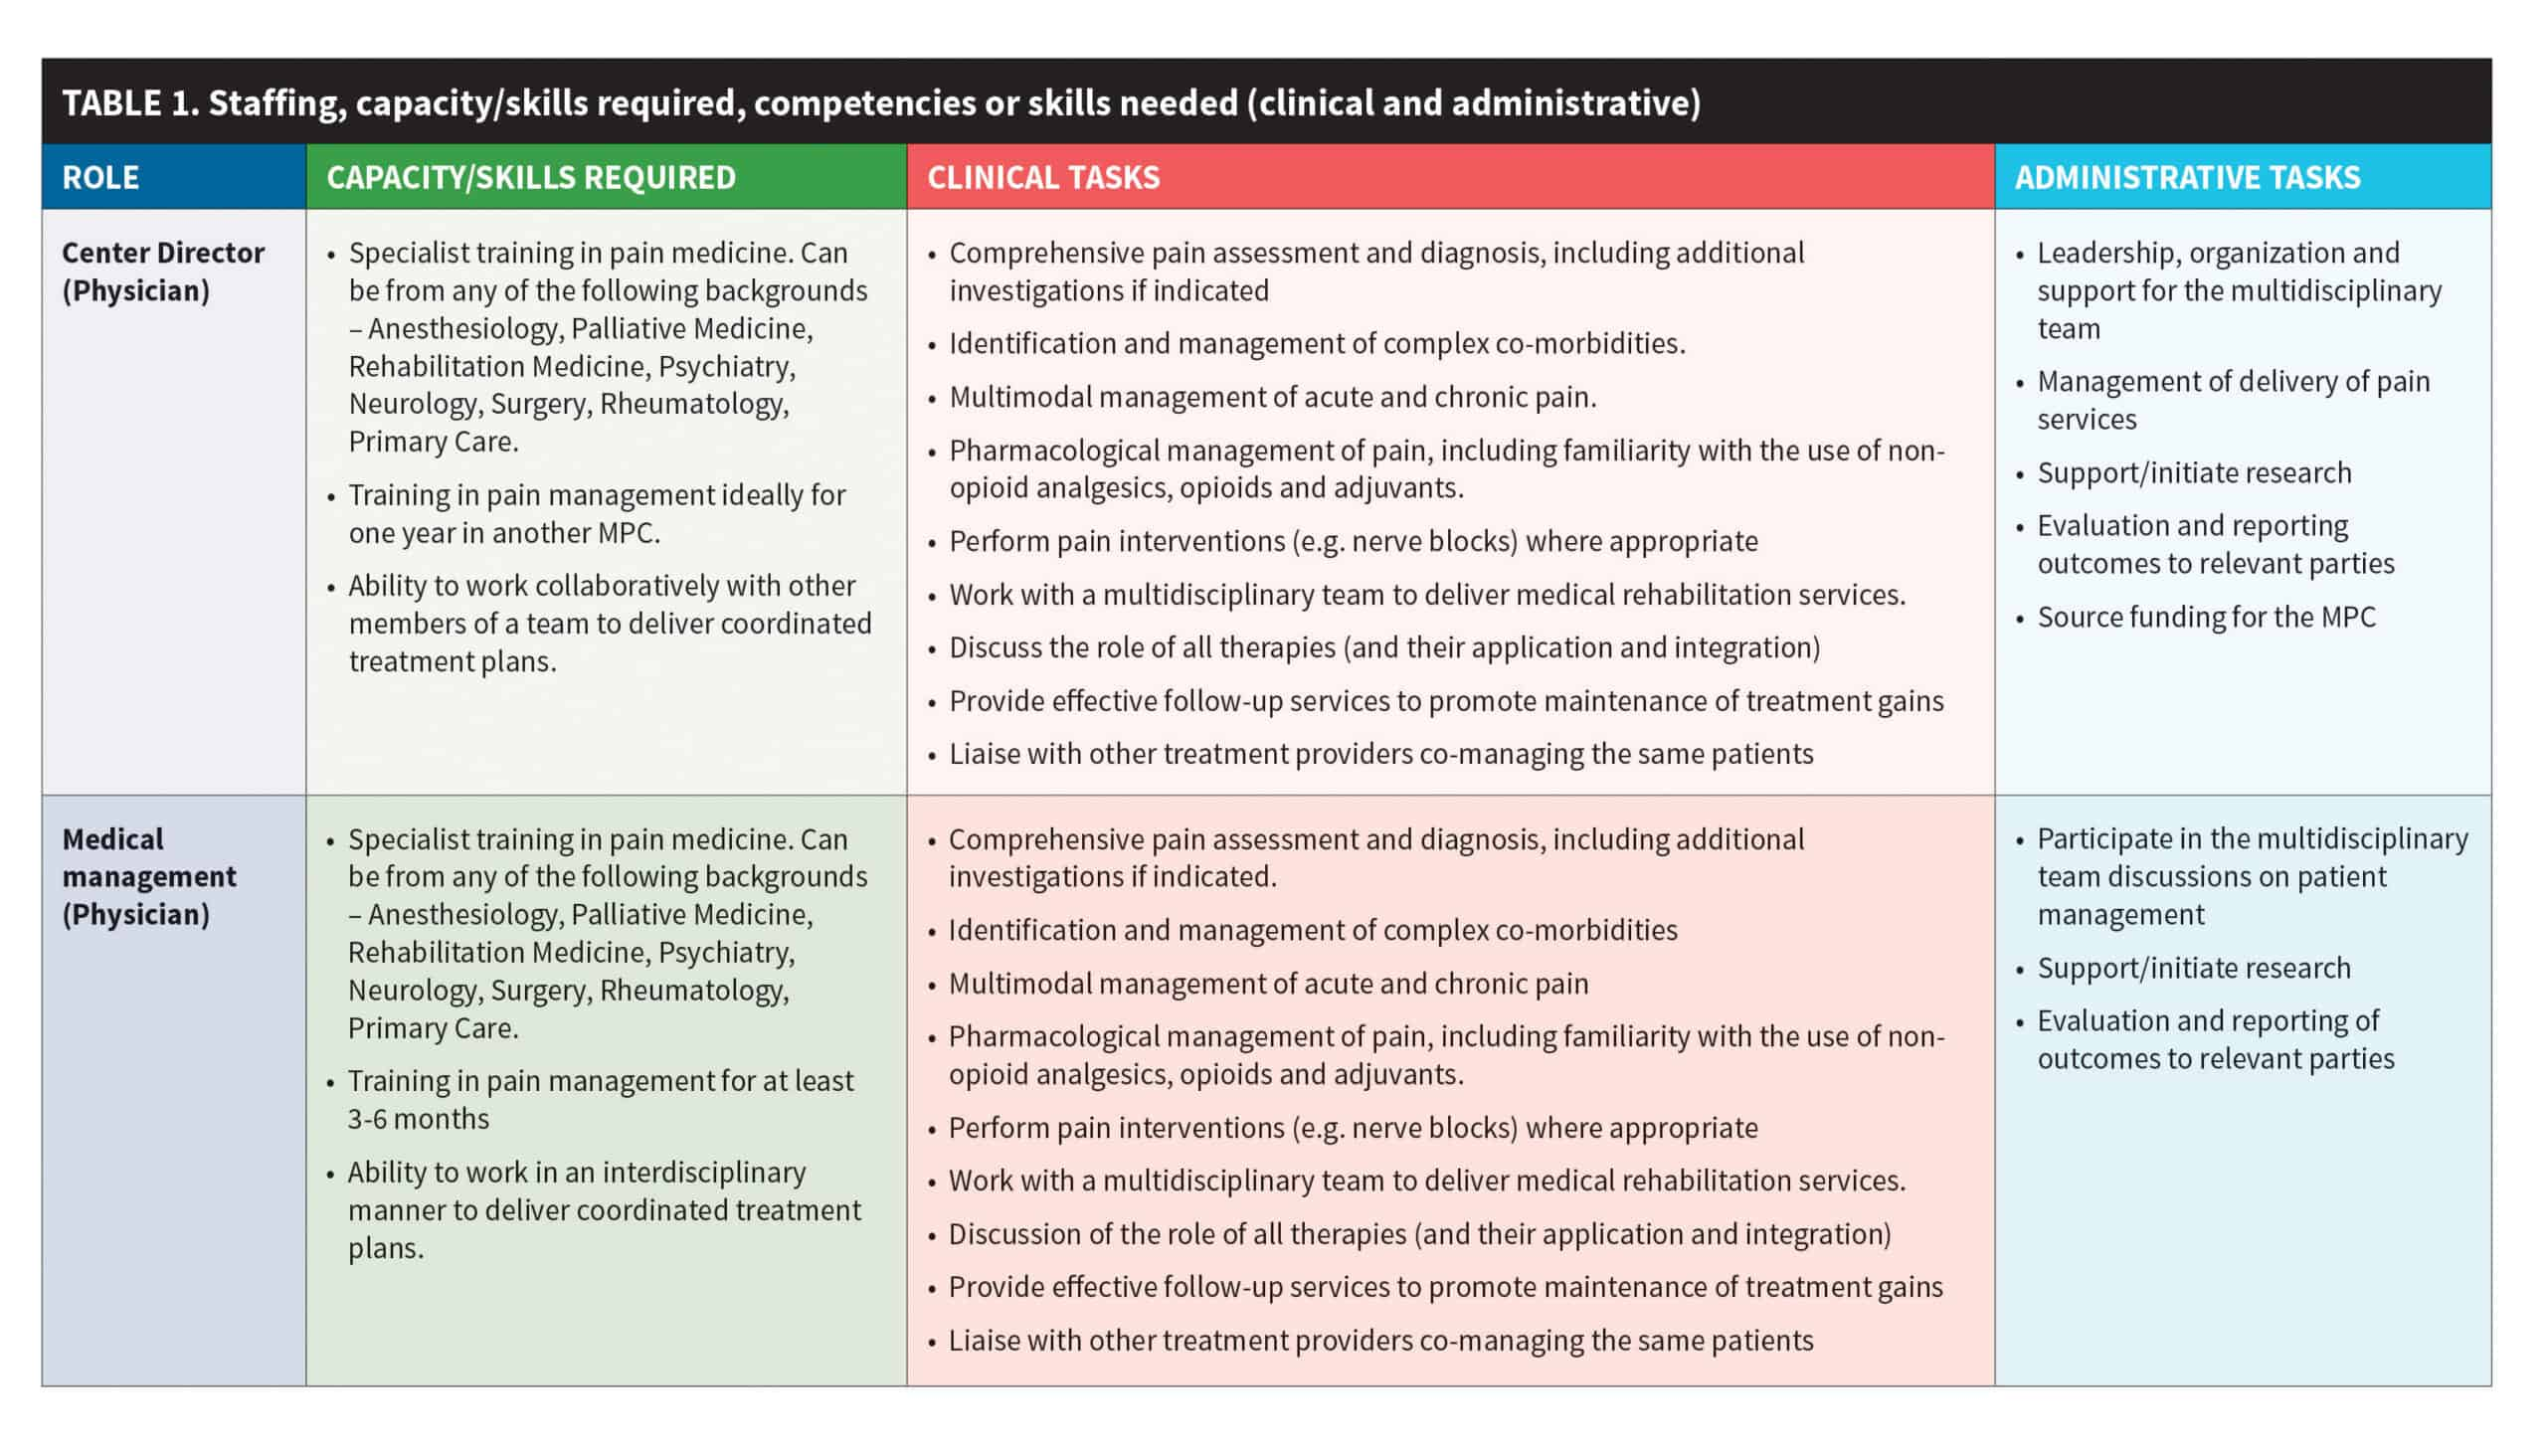 Table 1. Staffing, capacity/skills required, competencies or skills needed (clincial and administrative)